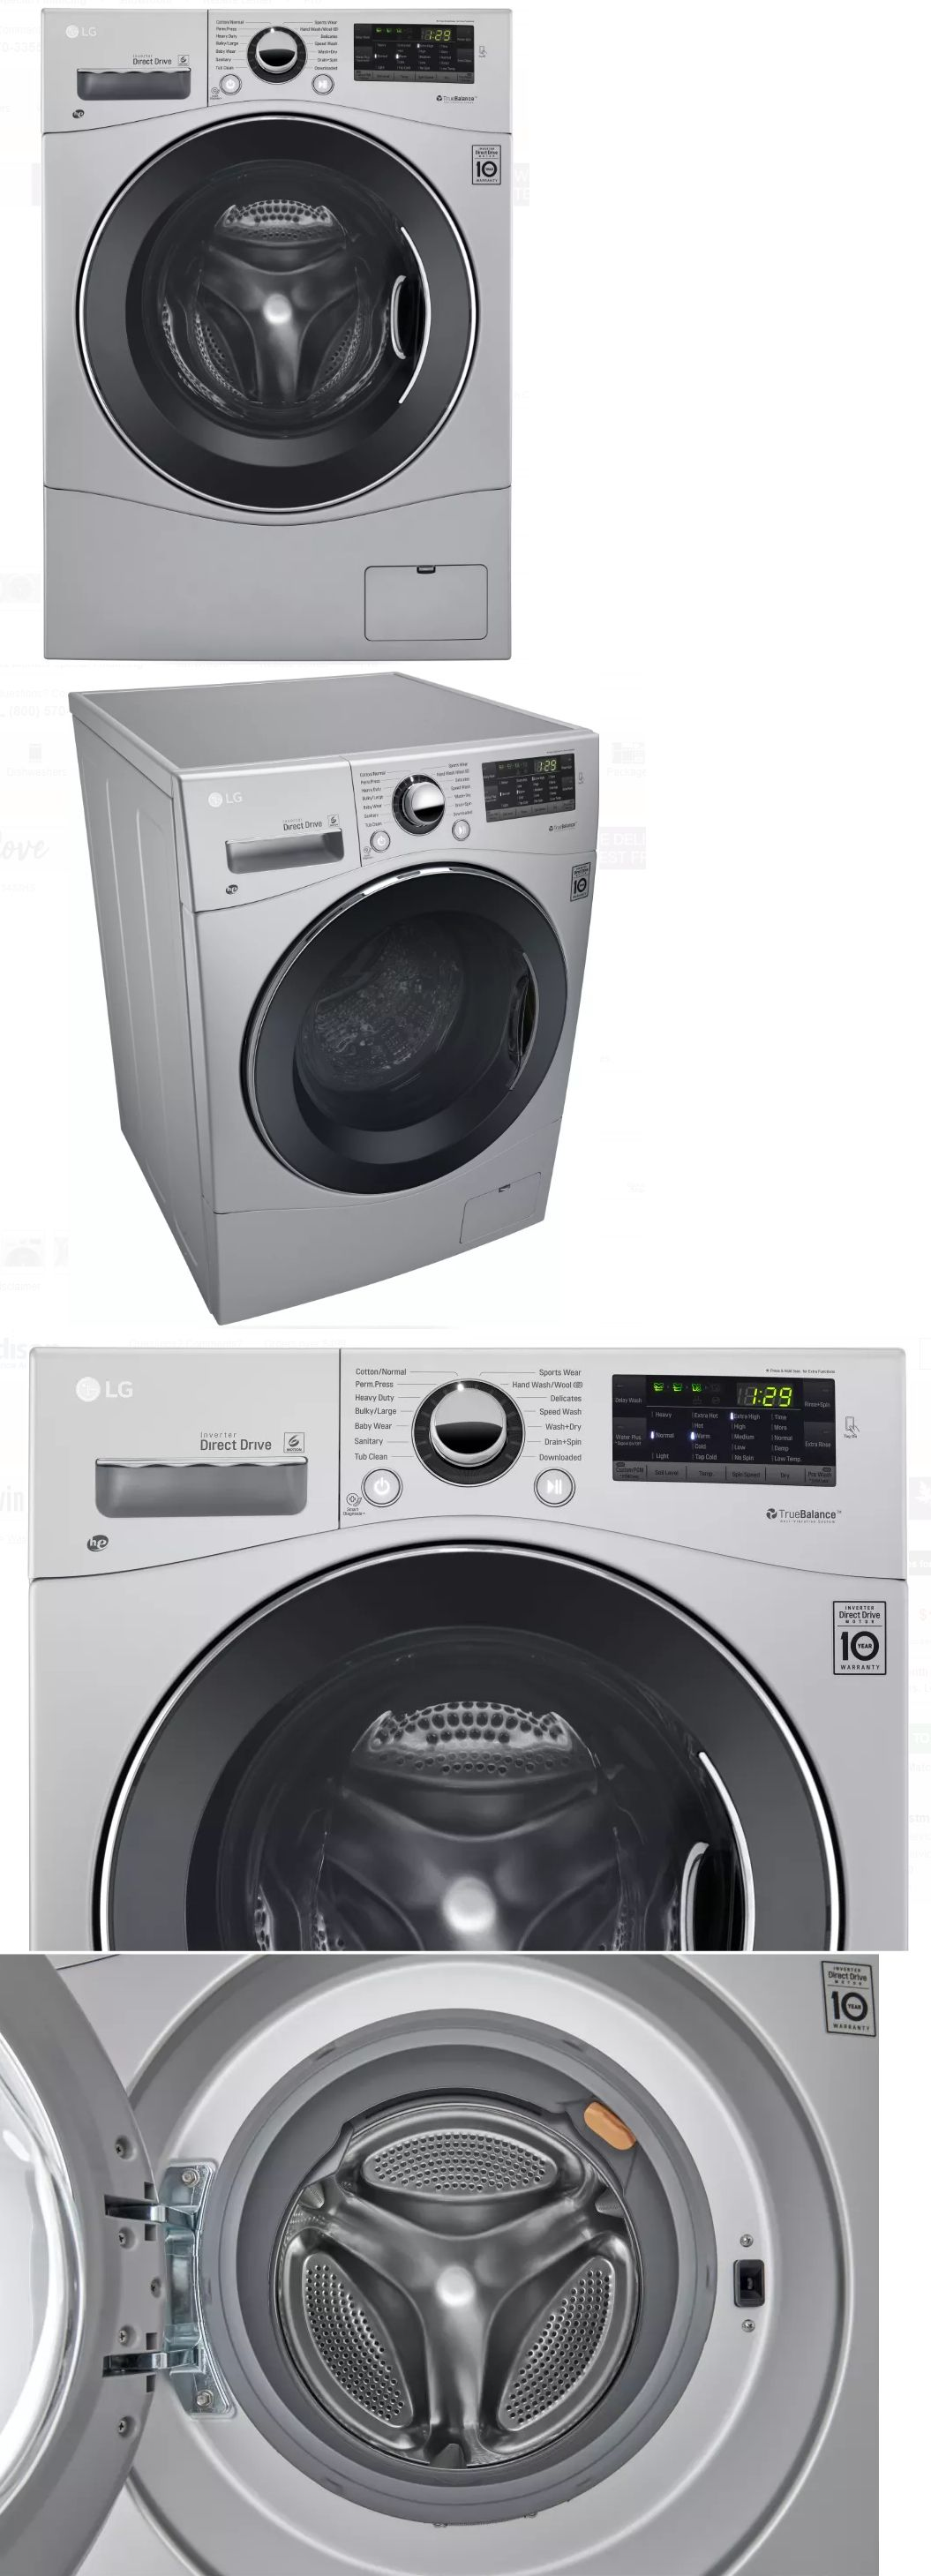 Washing Machines 71256 Lg Wm3488hs 24 In Silver Ventless Electric Washer Dryer Combo Buy It Now Only Electric Washer Washer Dryer Combo Washer And Dryer